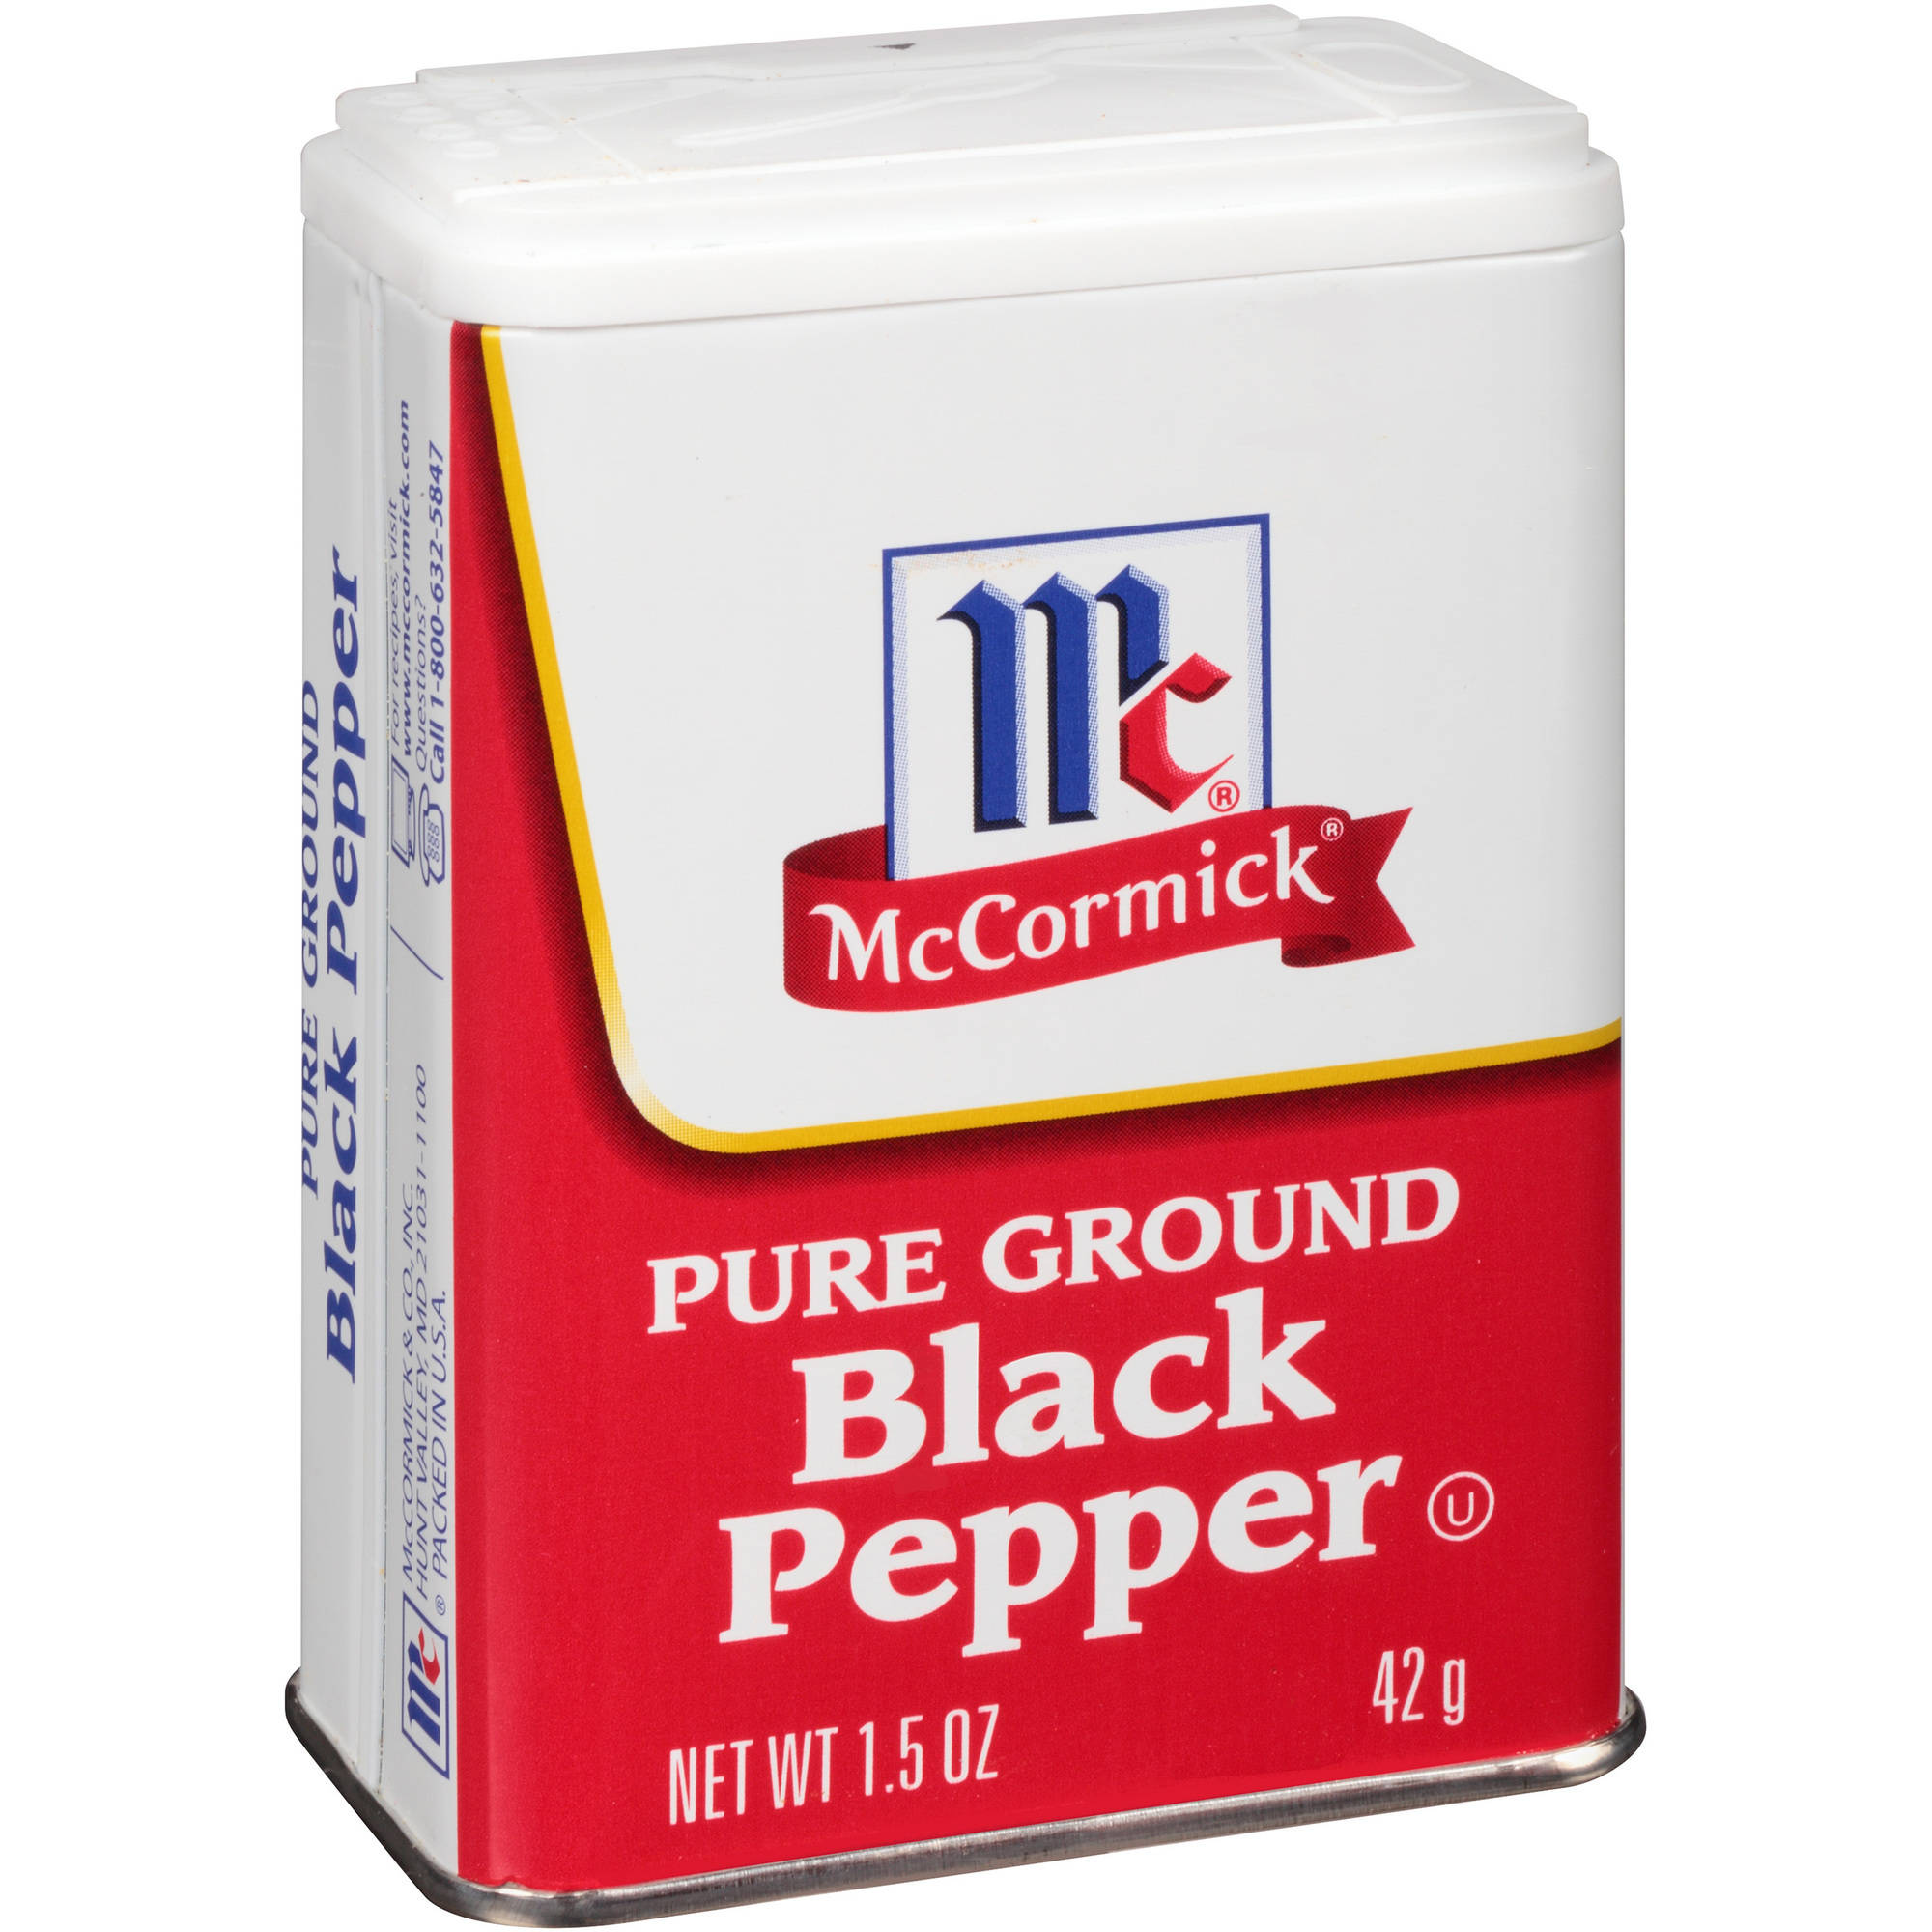 McCormick Pure Ground Black Pepper, 1.5 oz